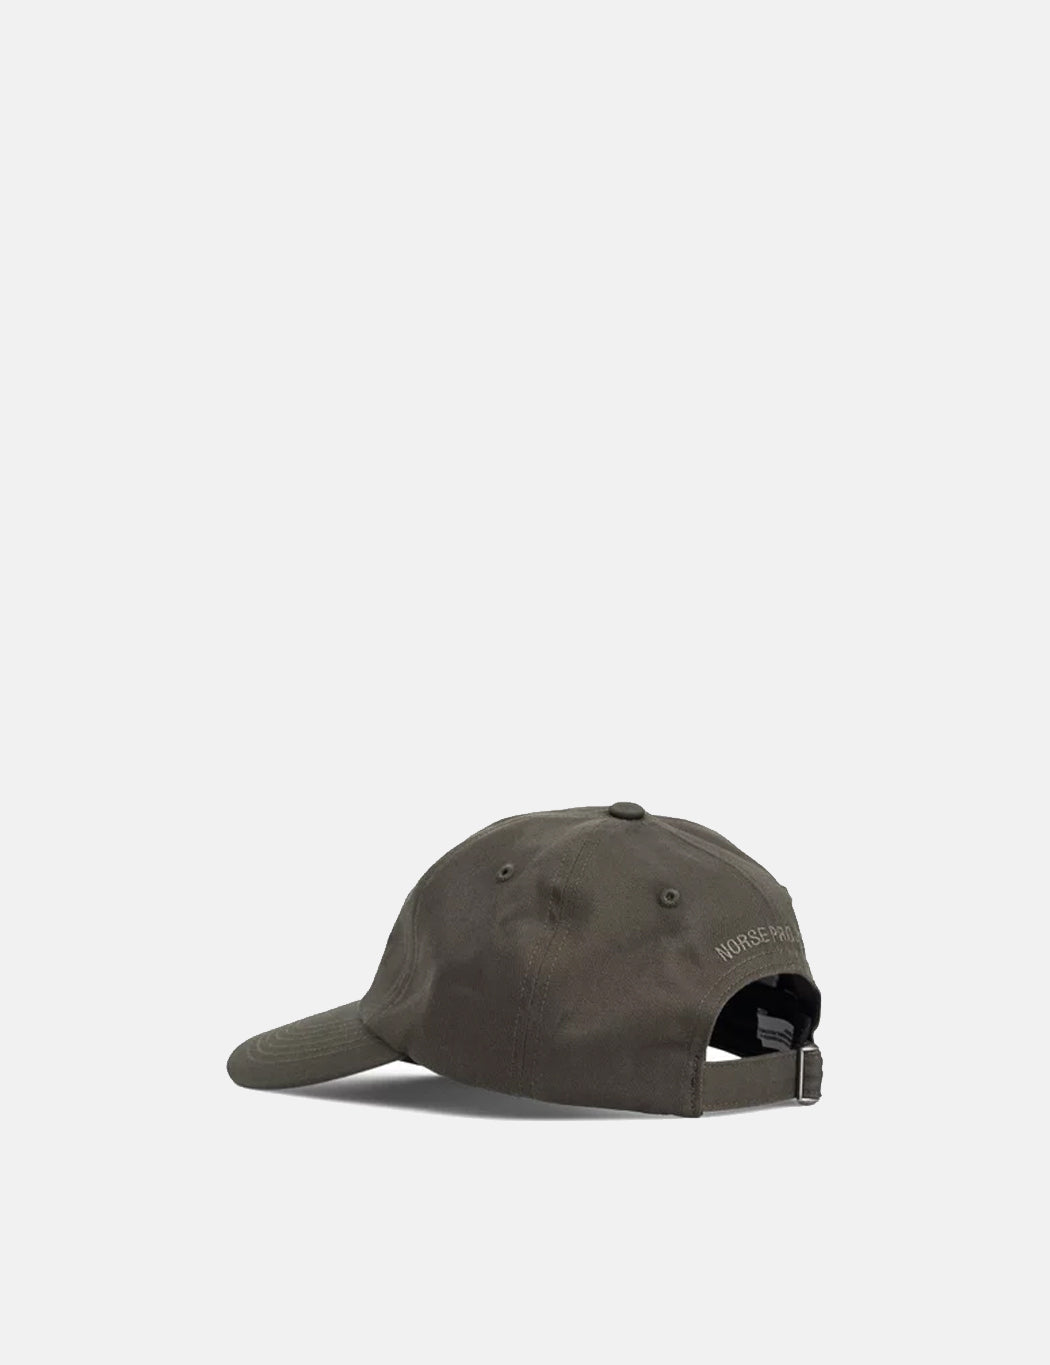 Norse Projects Twill Sports Cap - Sitka Green  53fb8f3126c